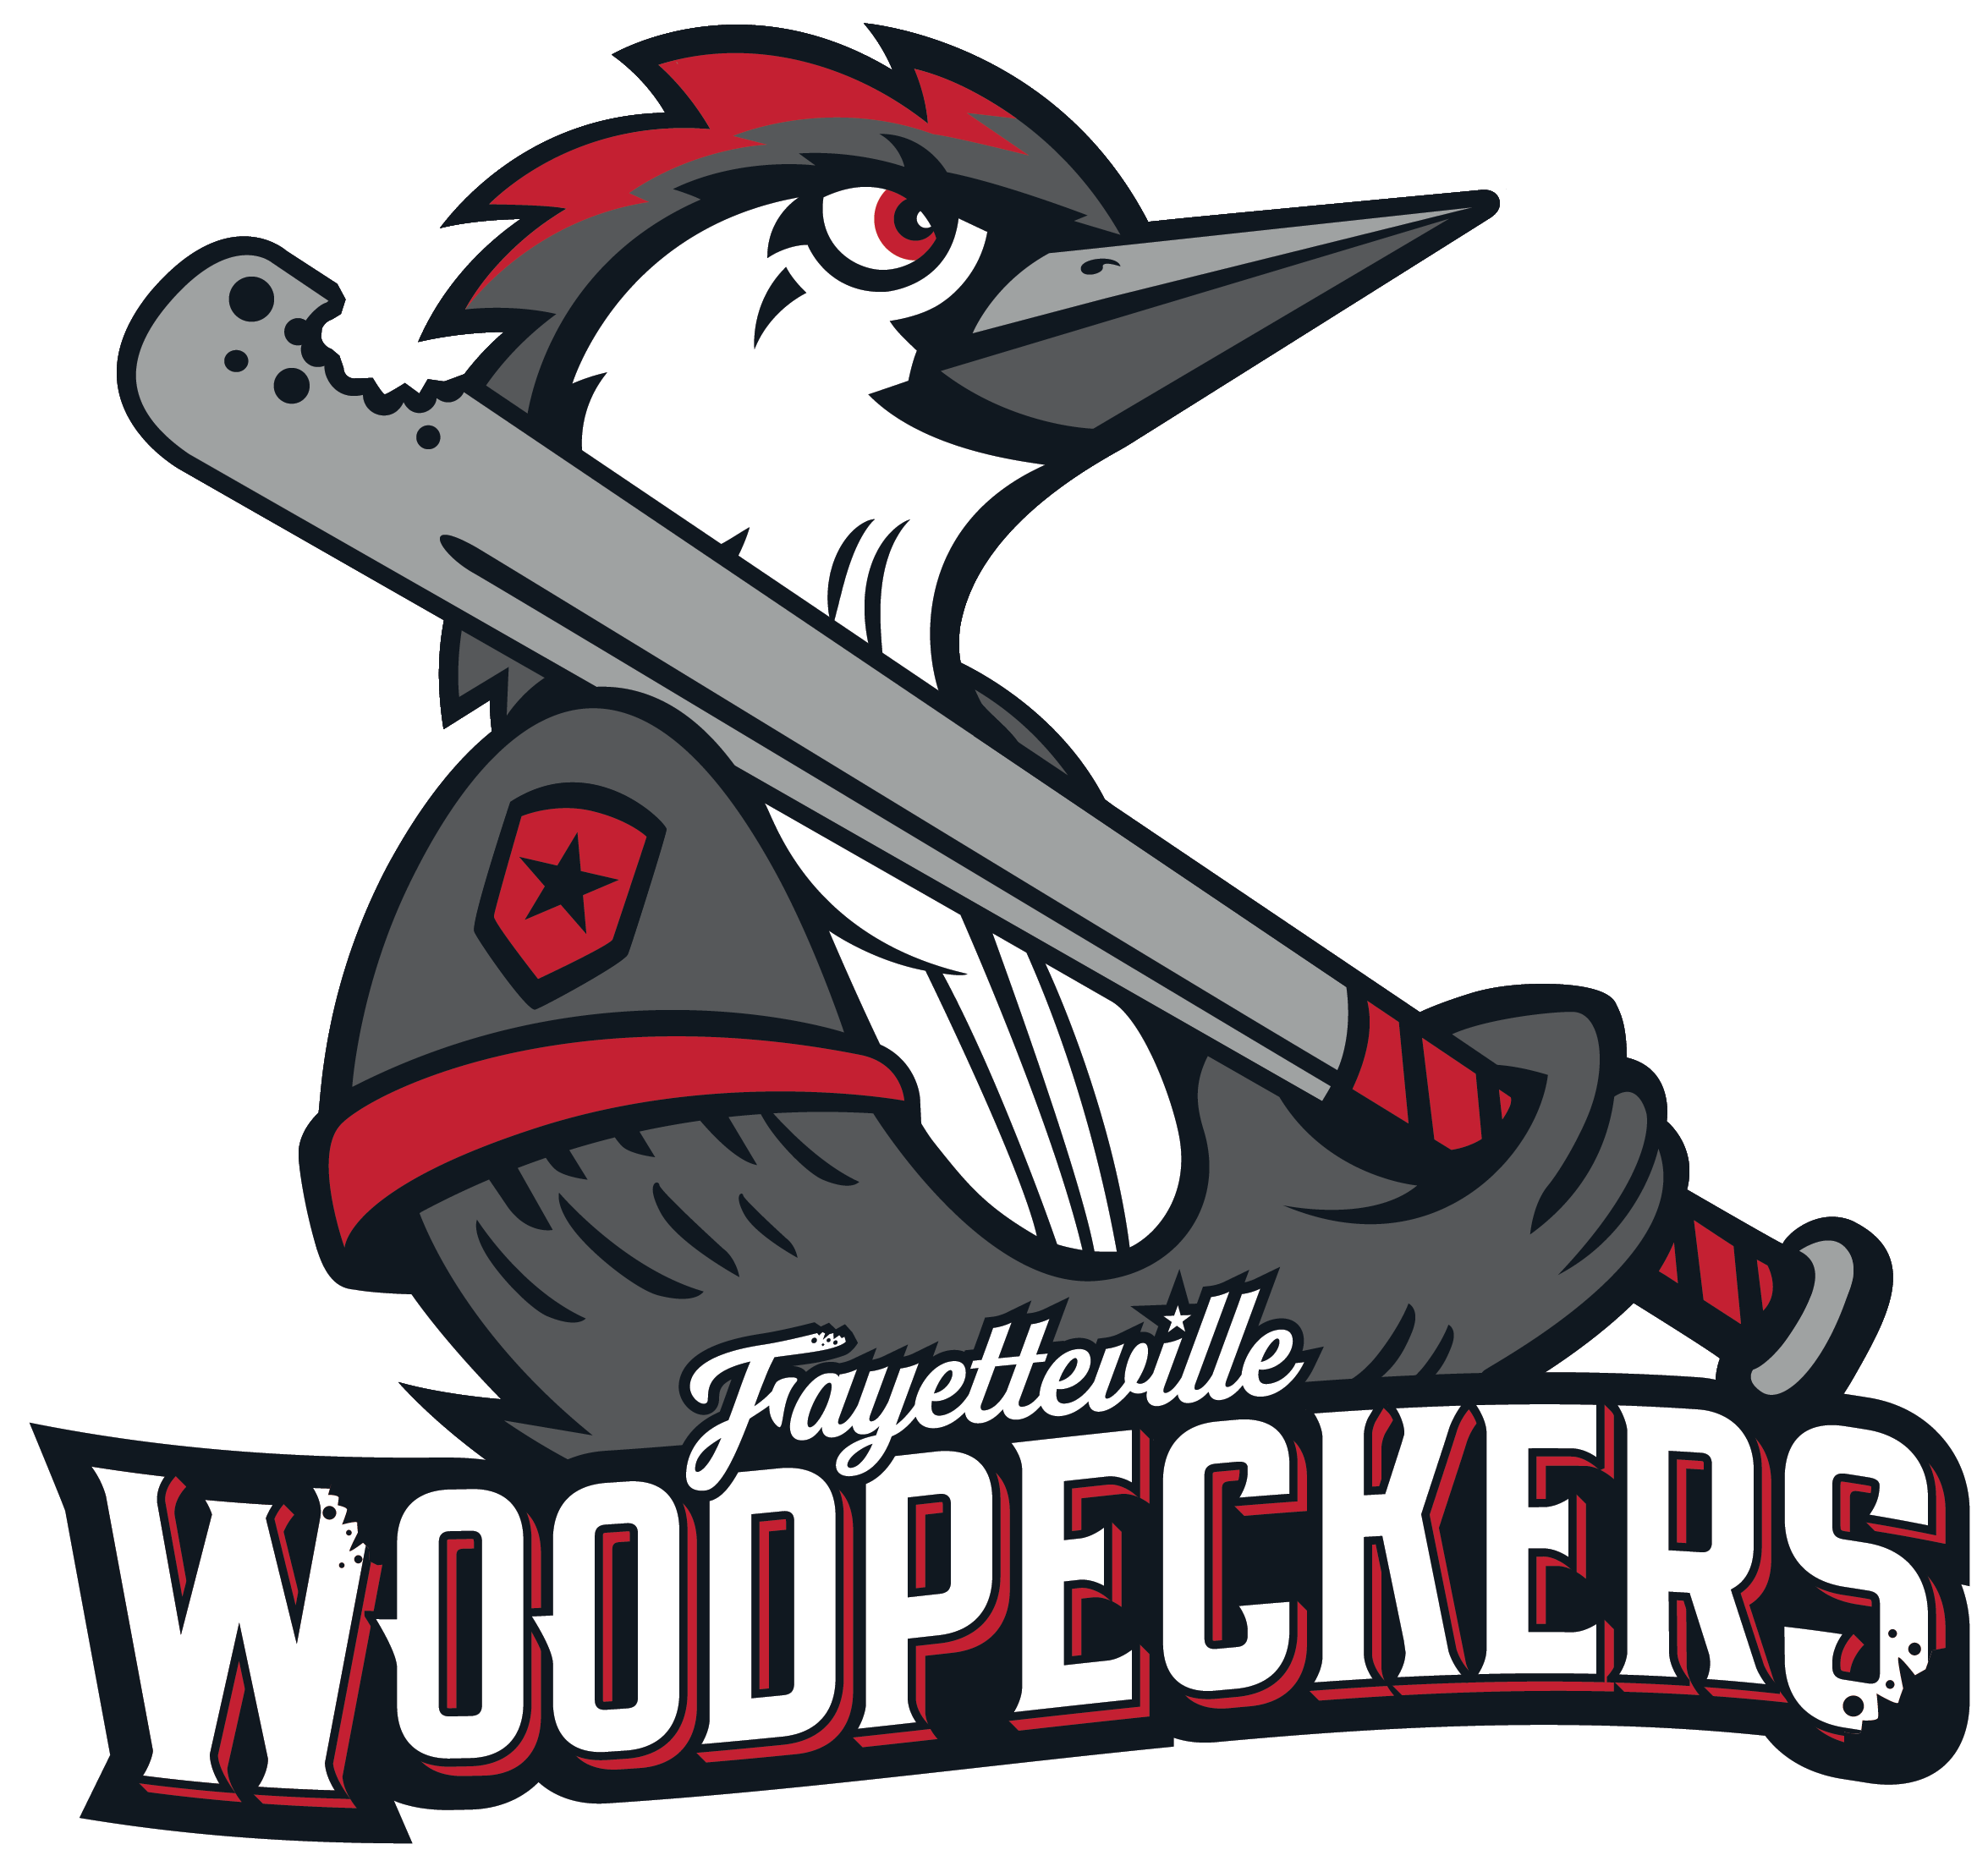 Fayetteville Woodpeckers Donate Meal Vouchers - BladenOnline.com